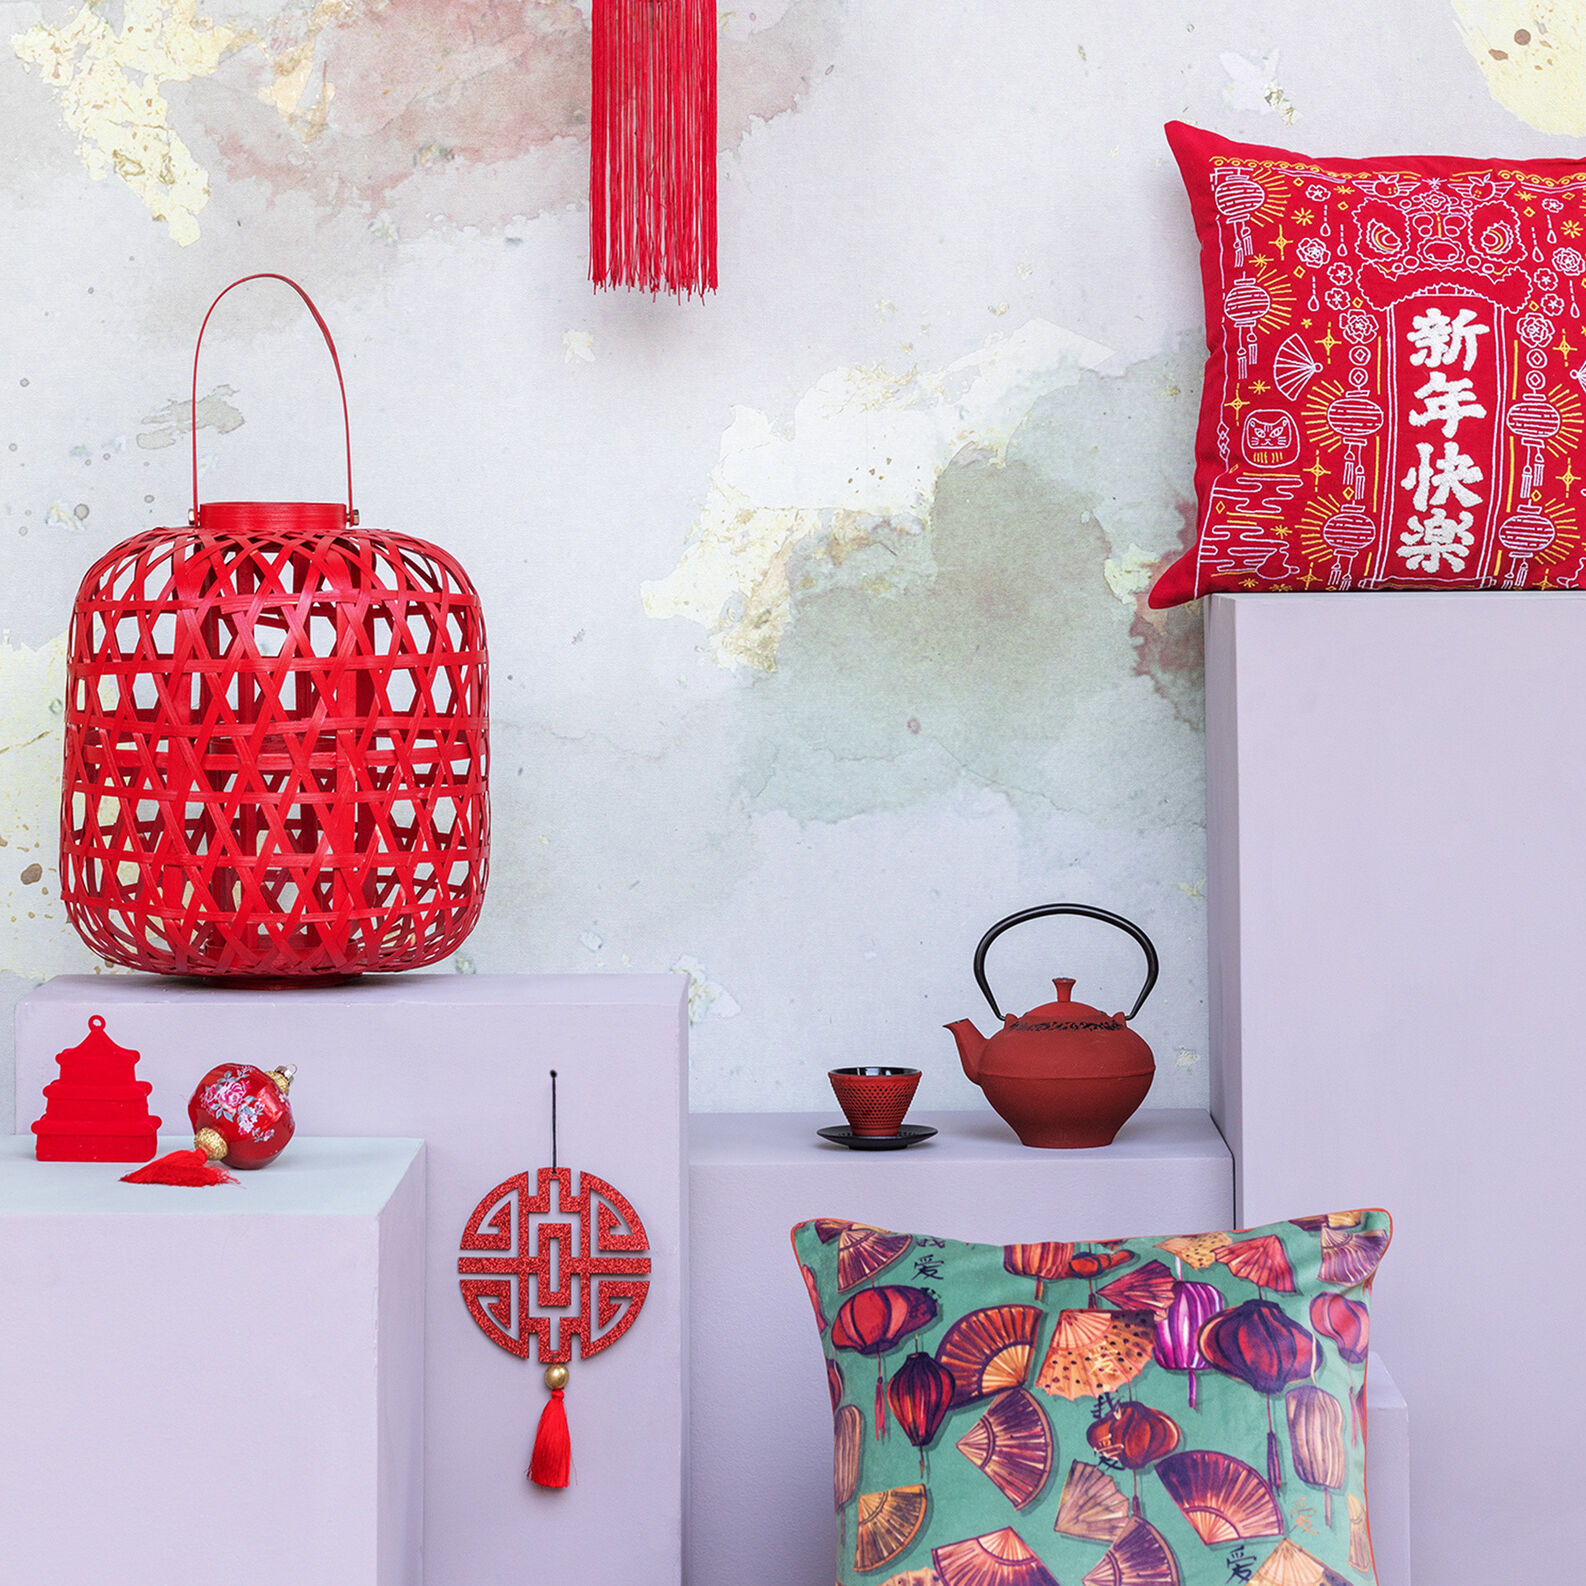 Cushion with embroider Chinese motif 45x45cm